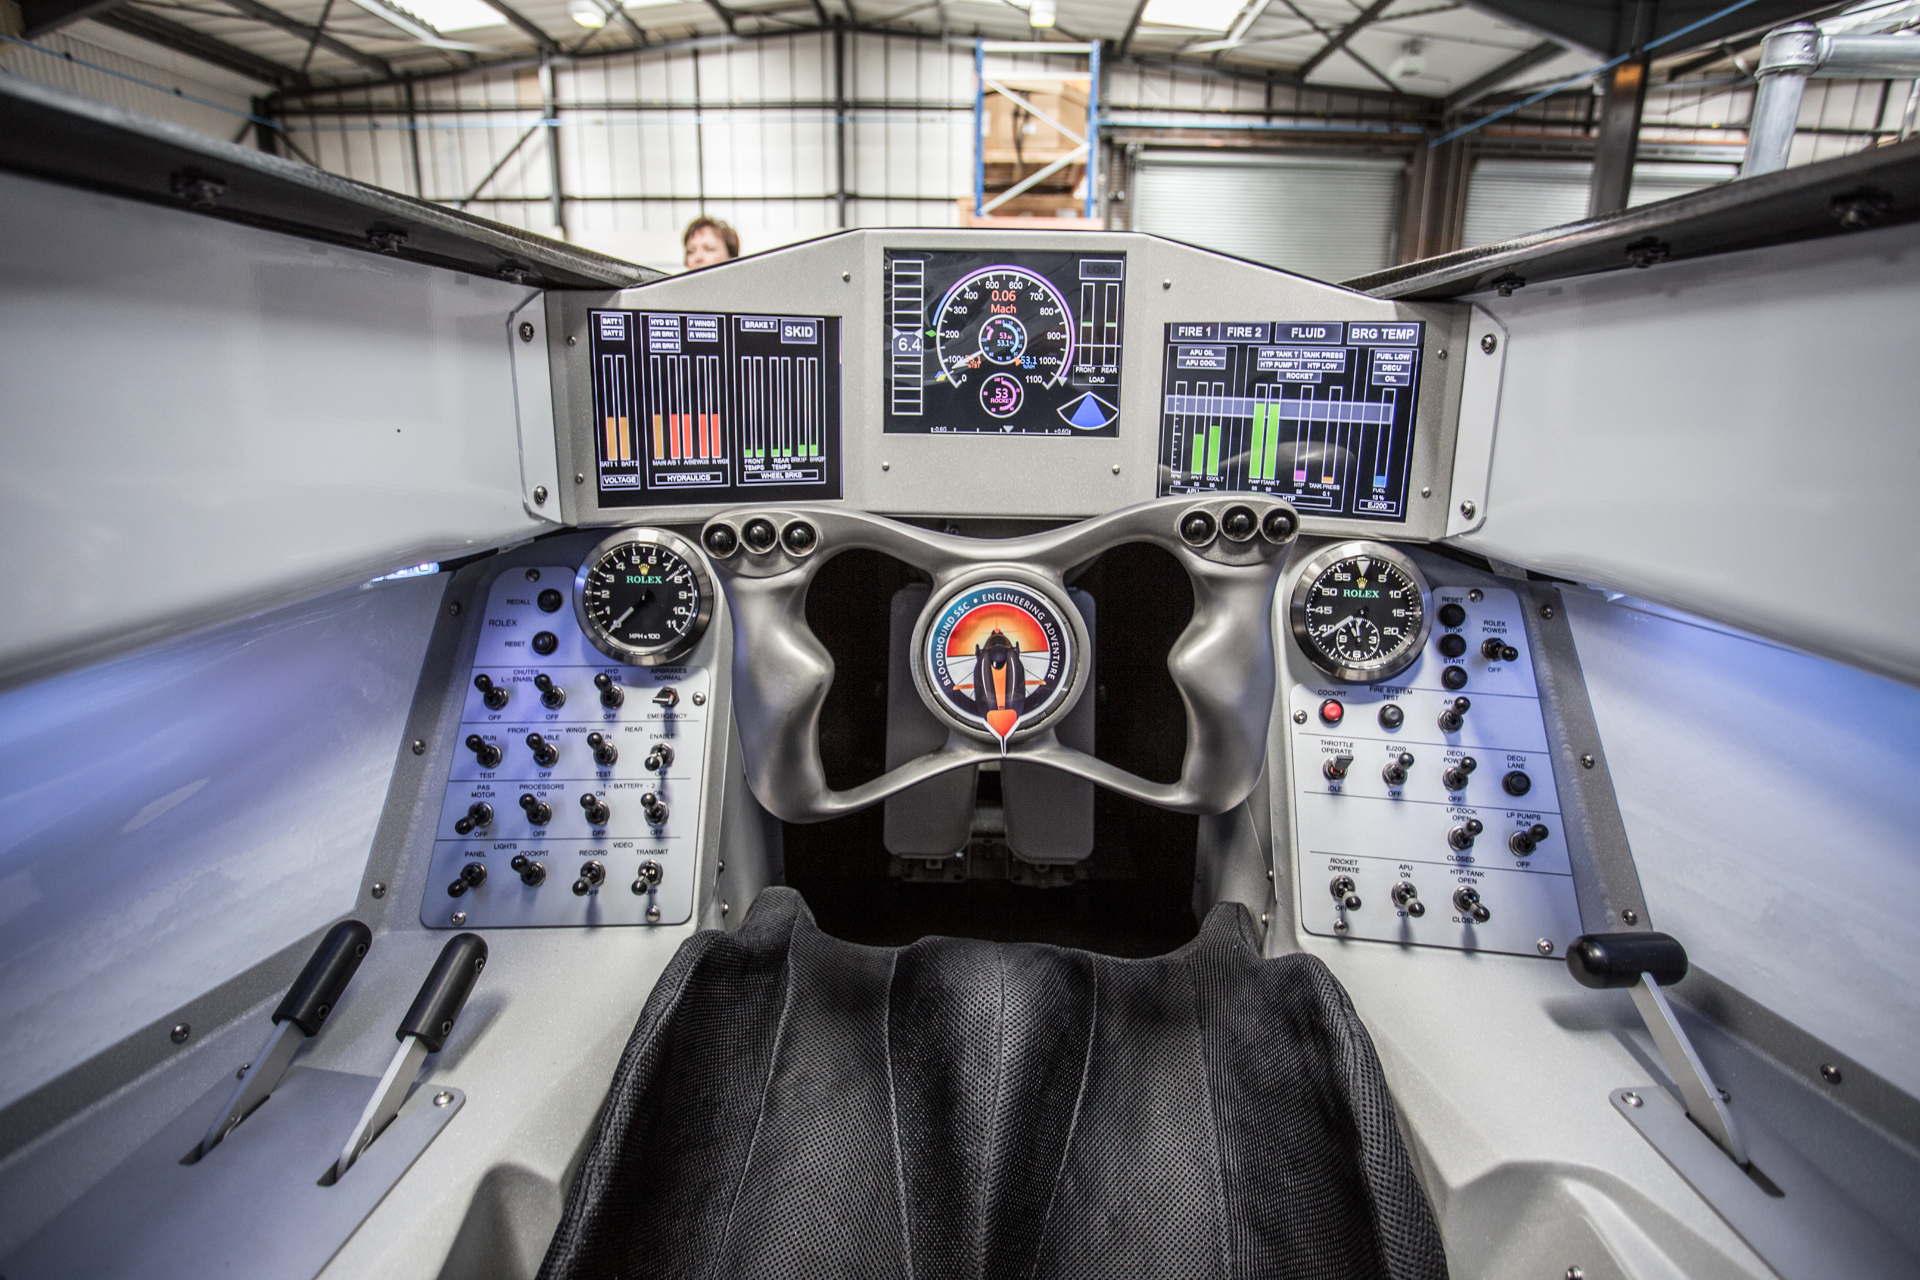 bloodhound-rocket-car-landspeed-17.jpg